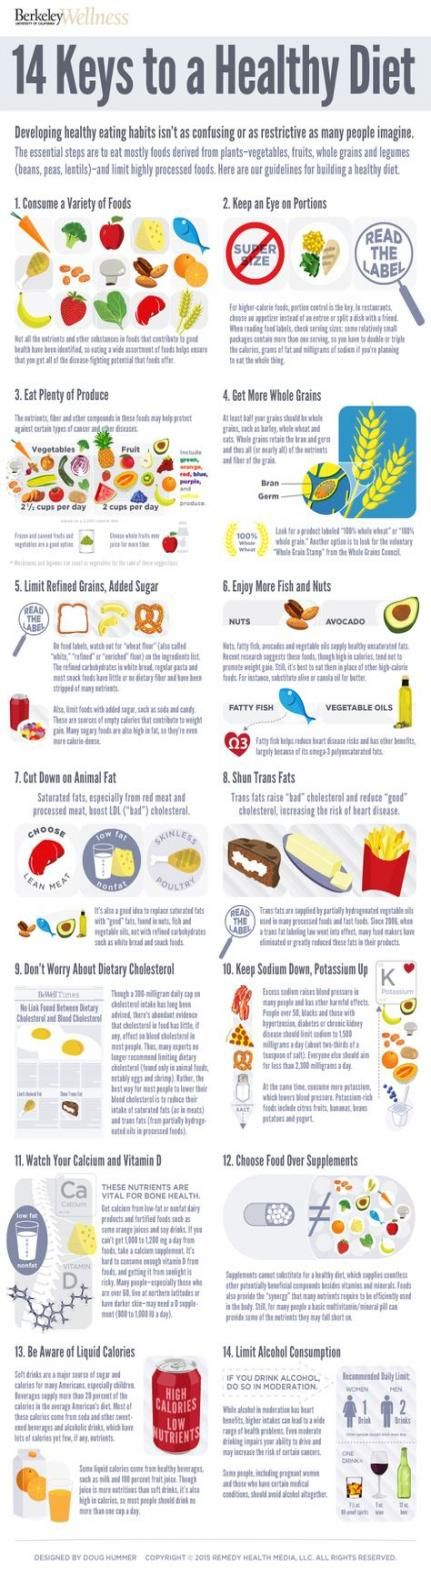 Fitness Nutrition Quotes Website 60+ Ideas #quotes #fitness #nutrition